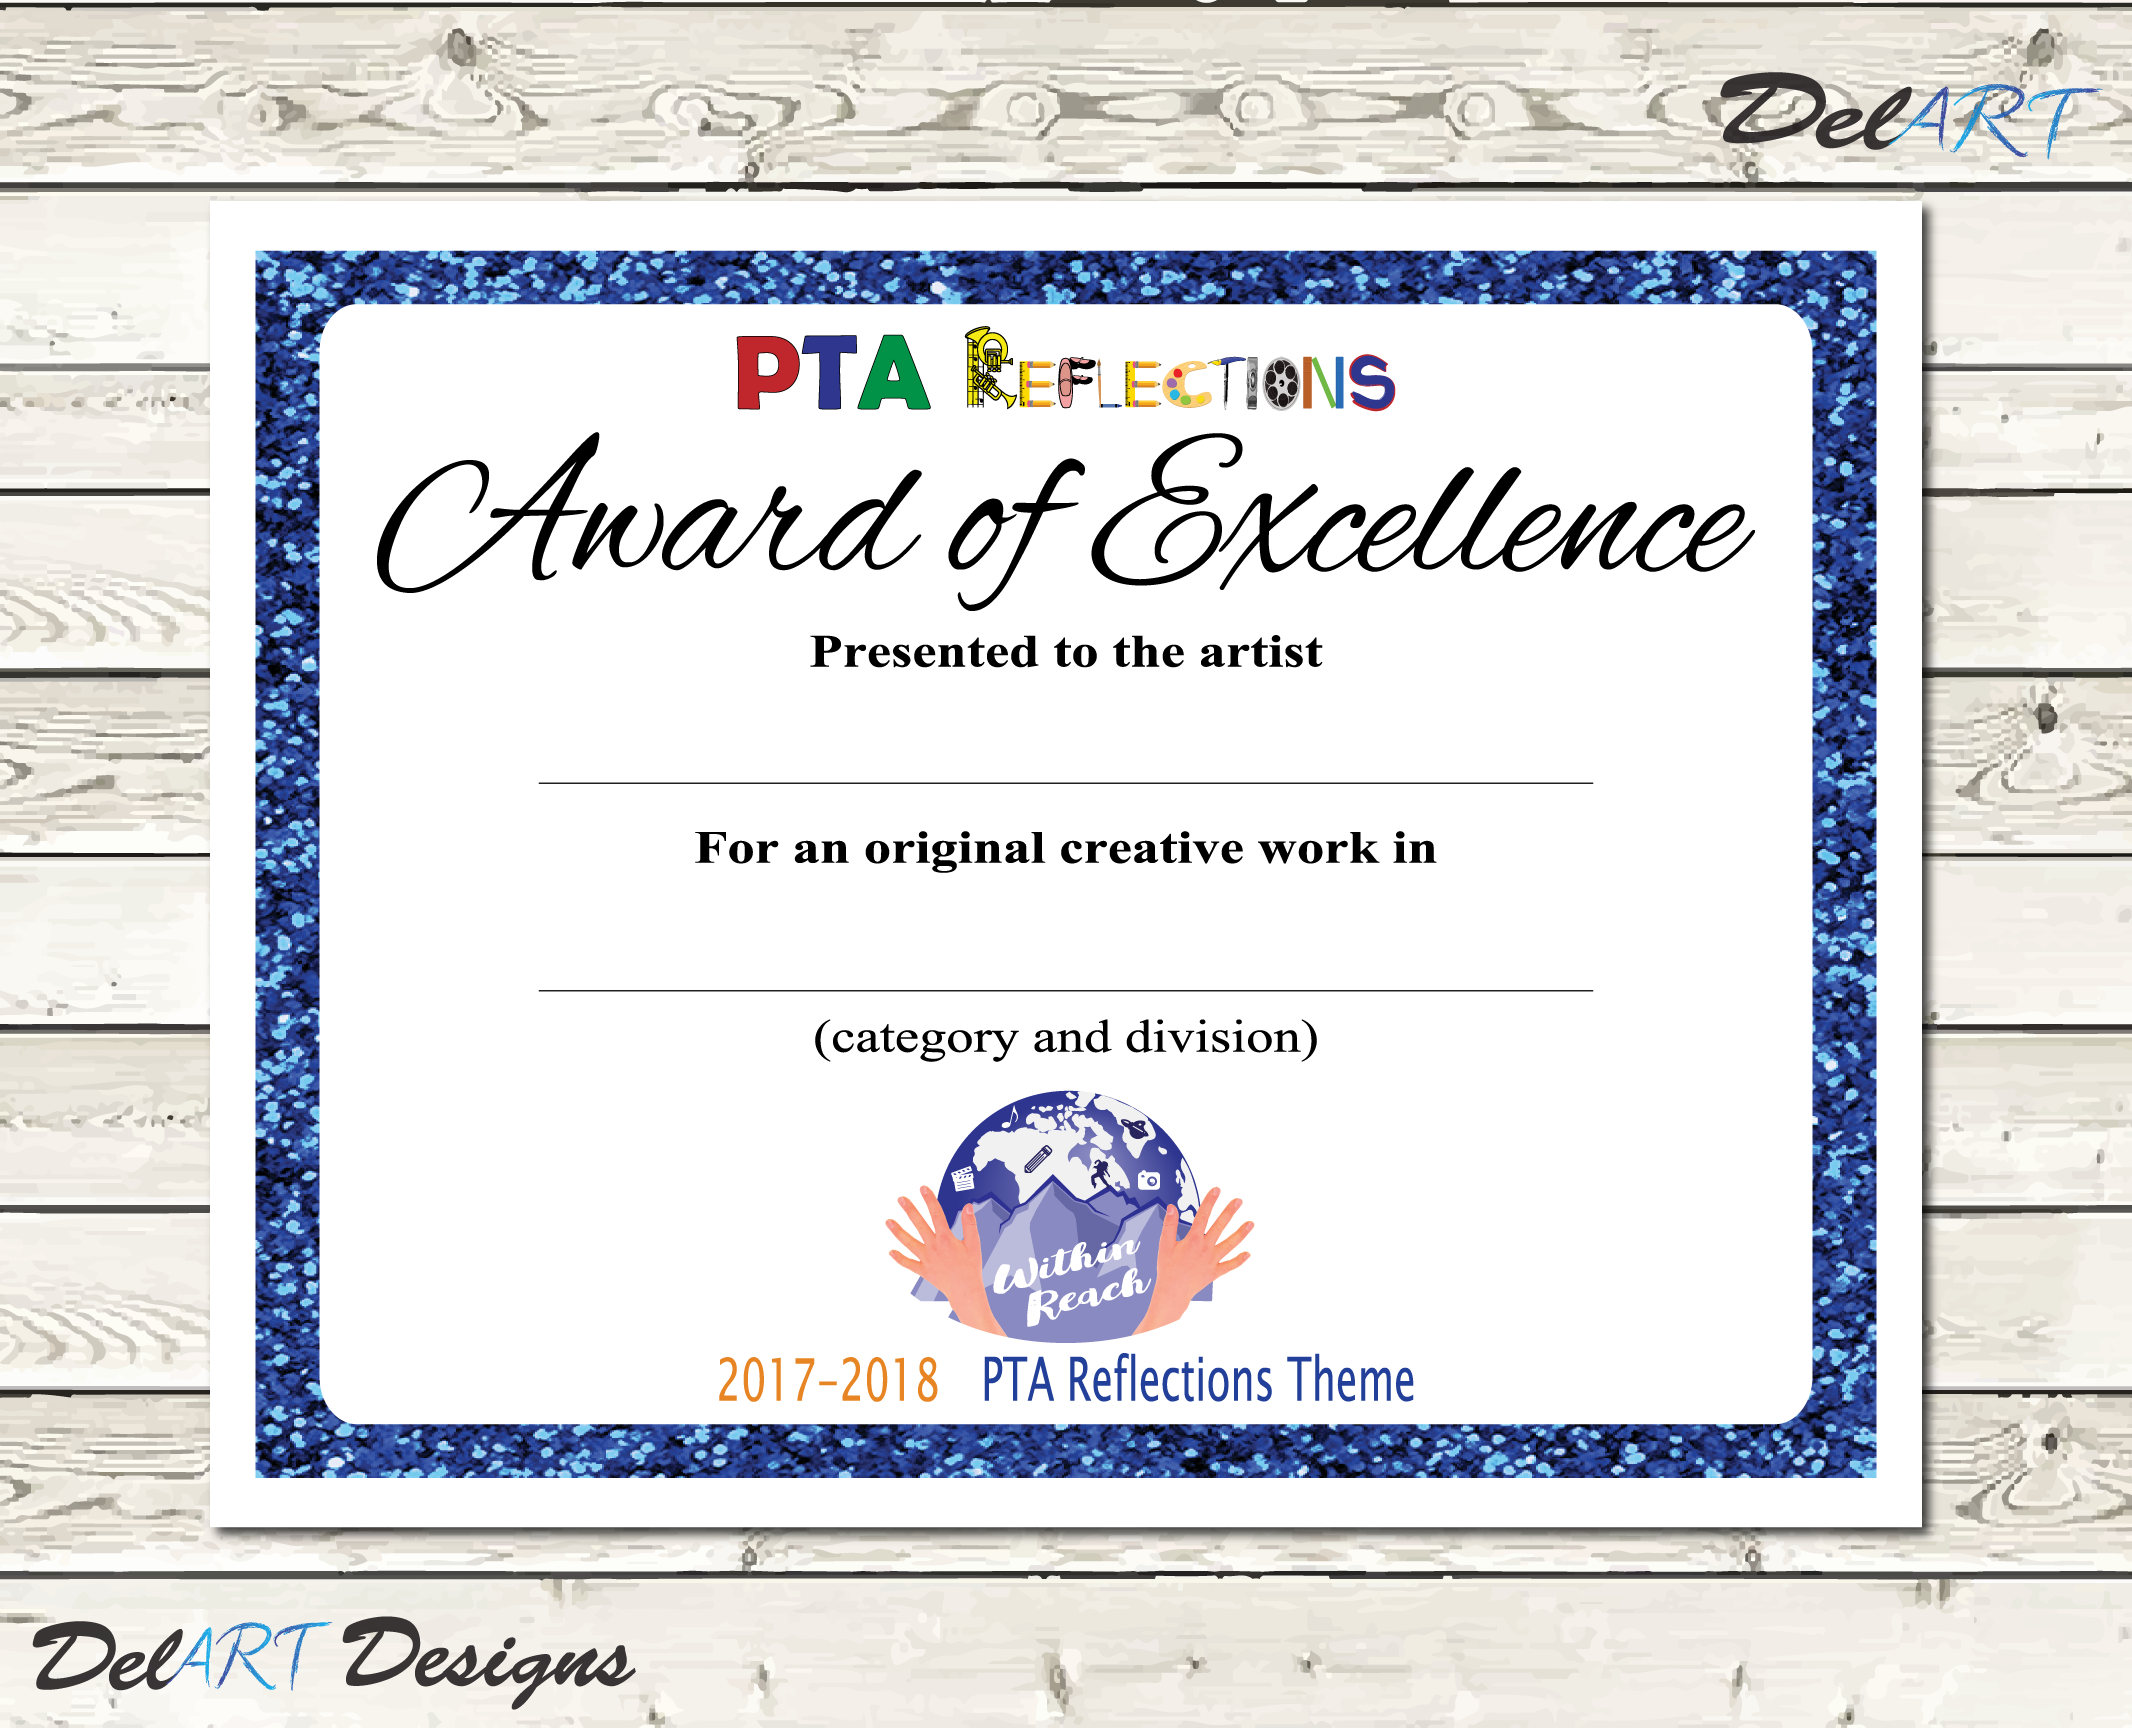 Pta reflections certificate 2017 2018 digital printable pdf zoom xflitez Image collections